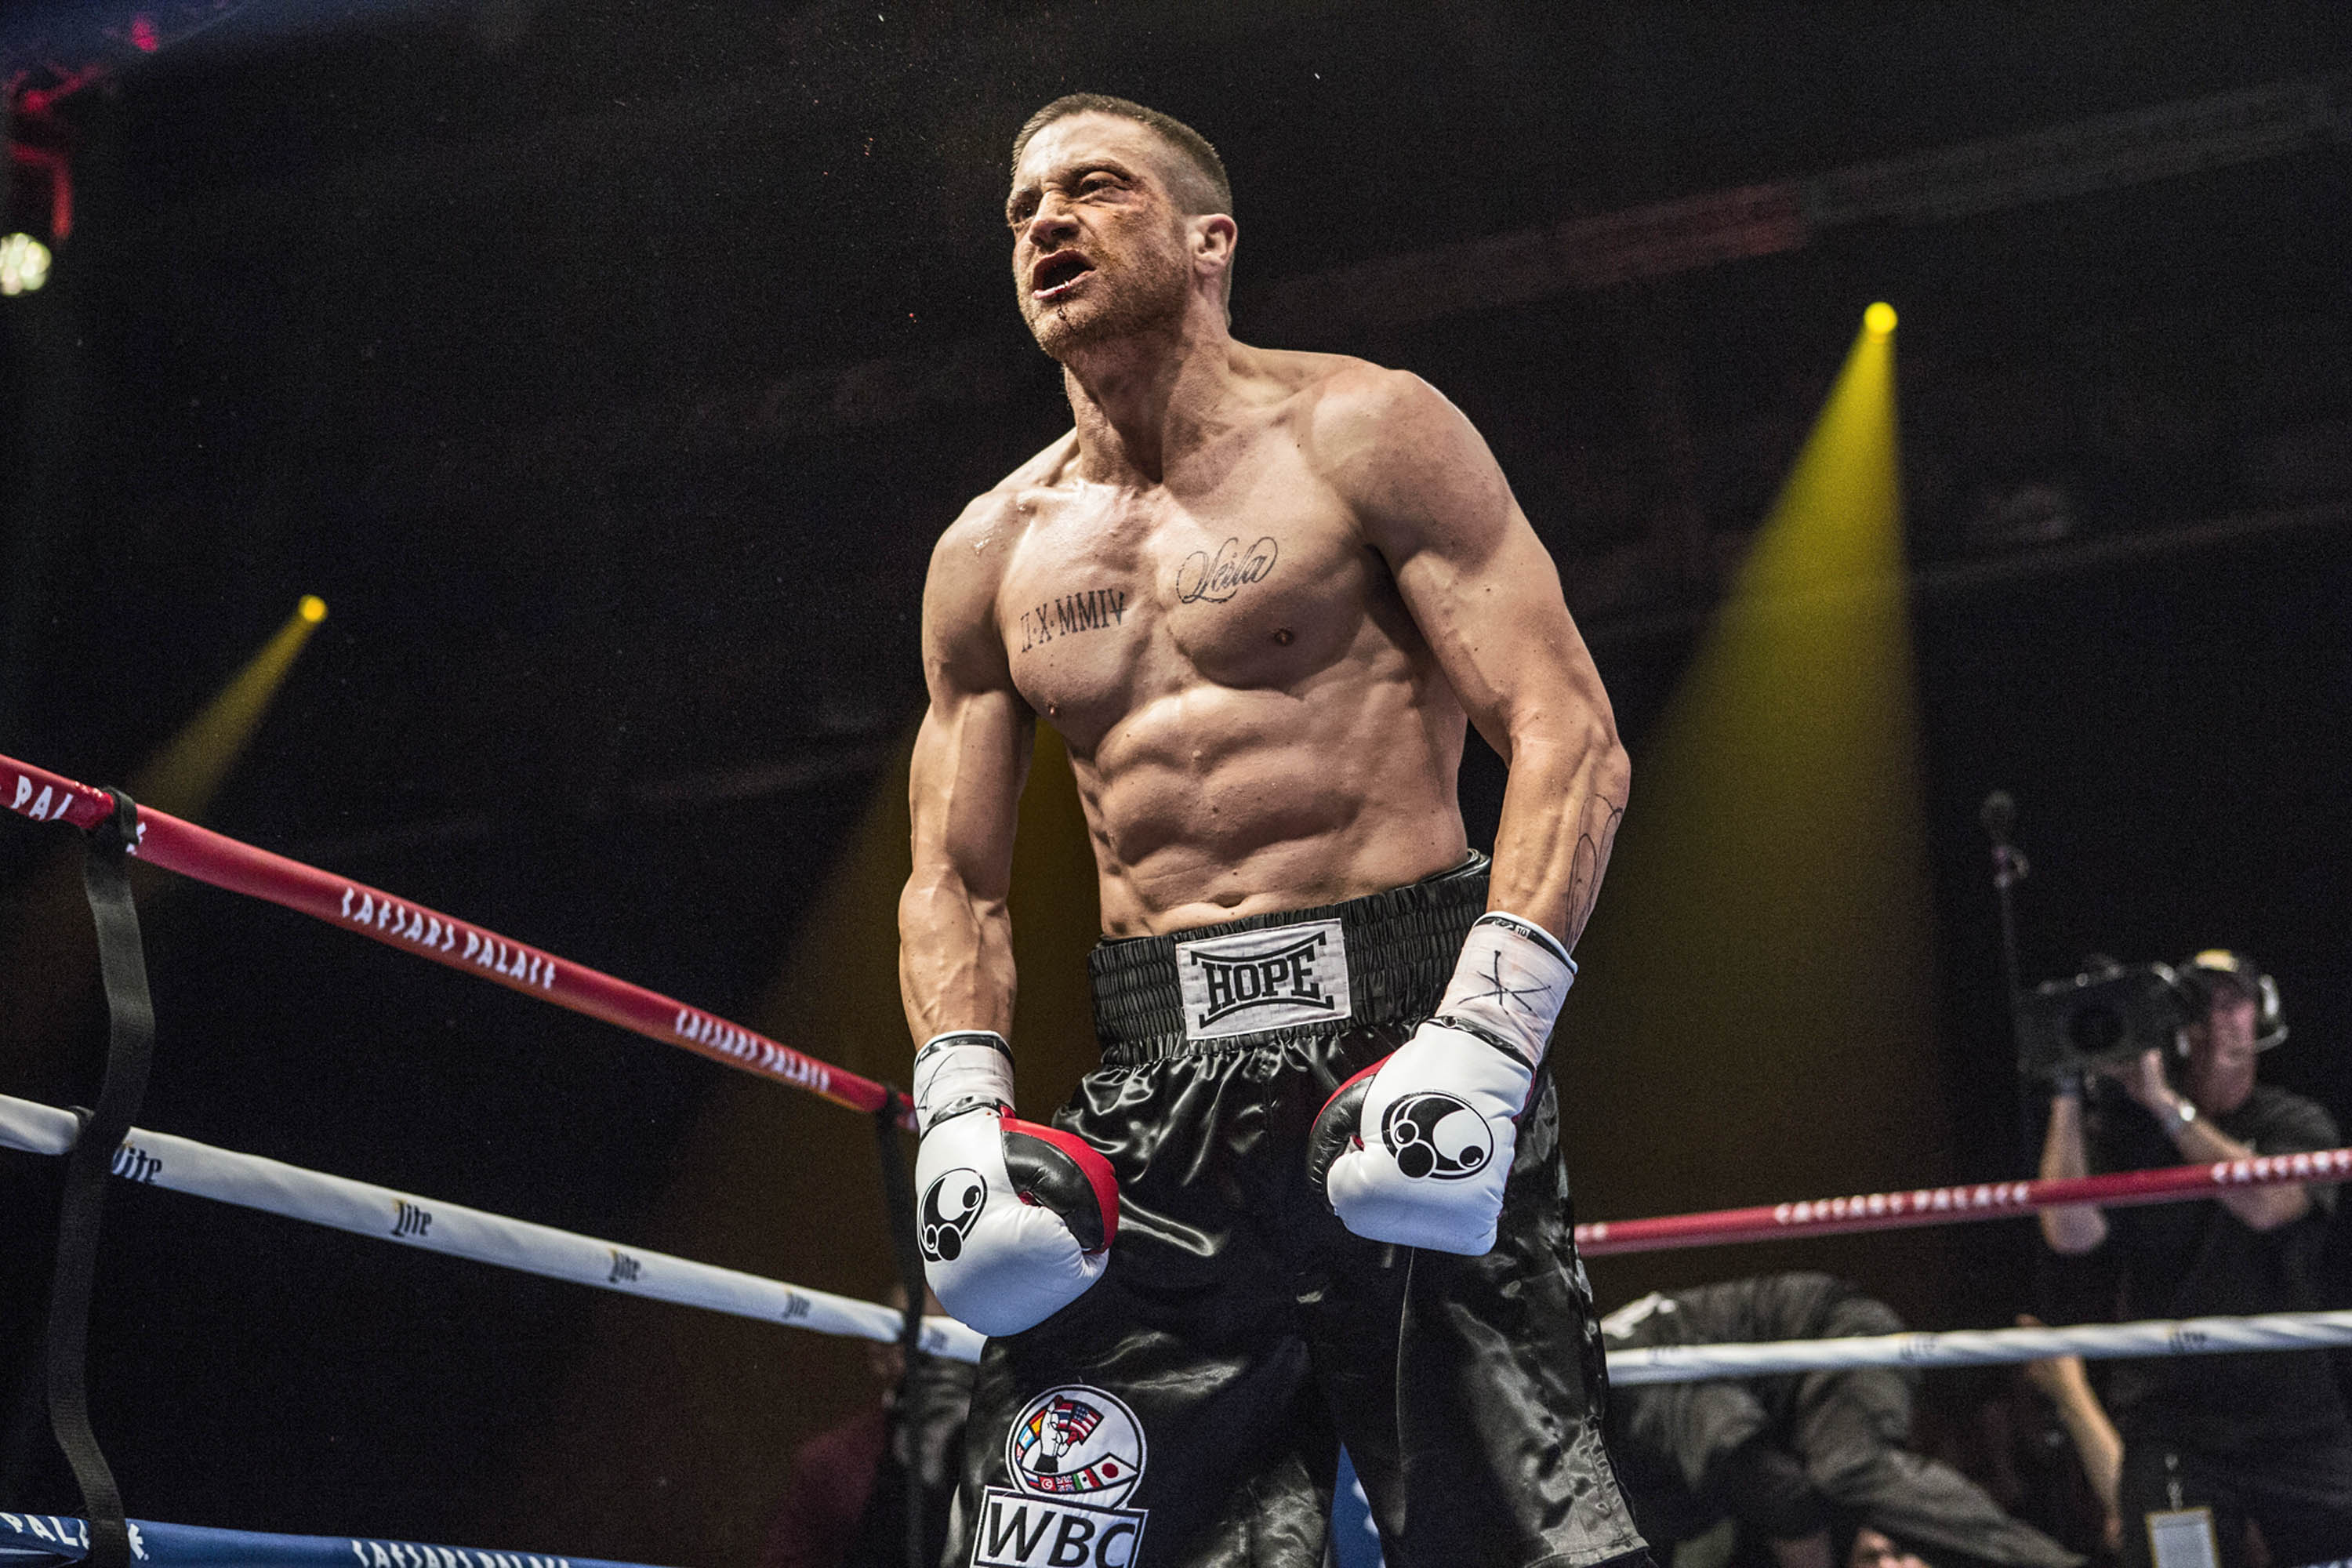 As a boxing champ, Gyllenhaal transforms more than his body.